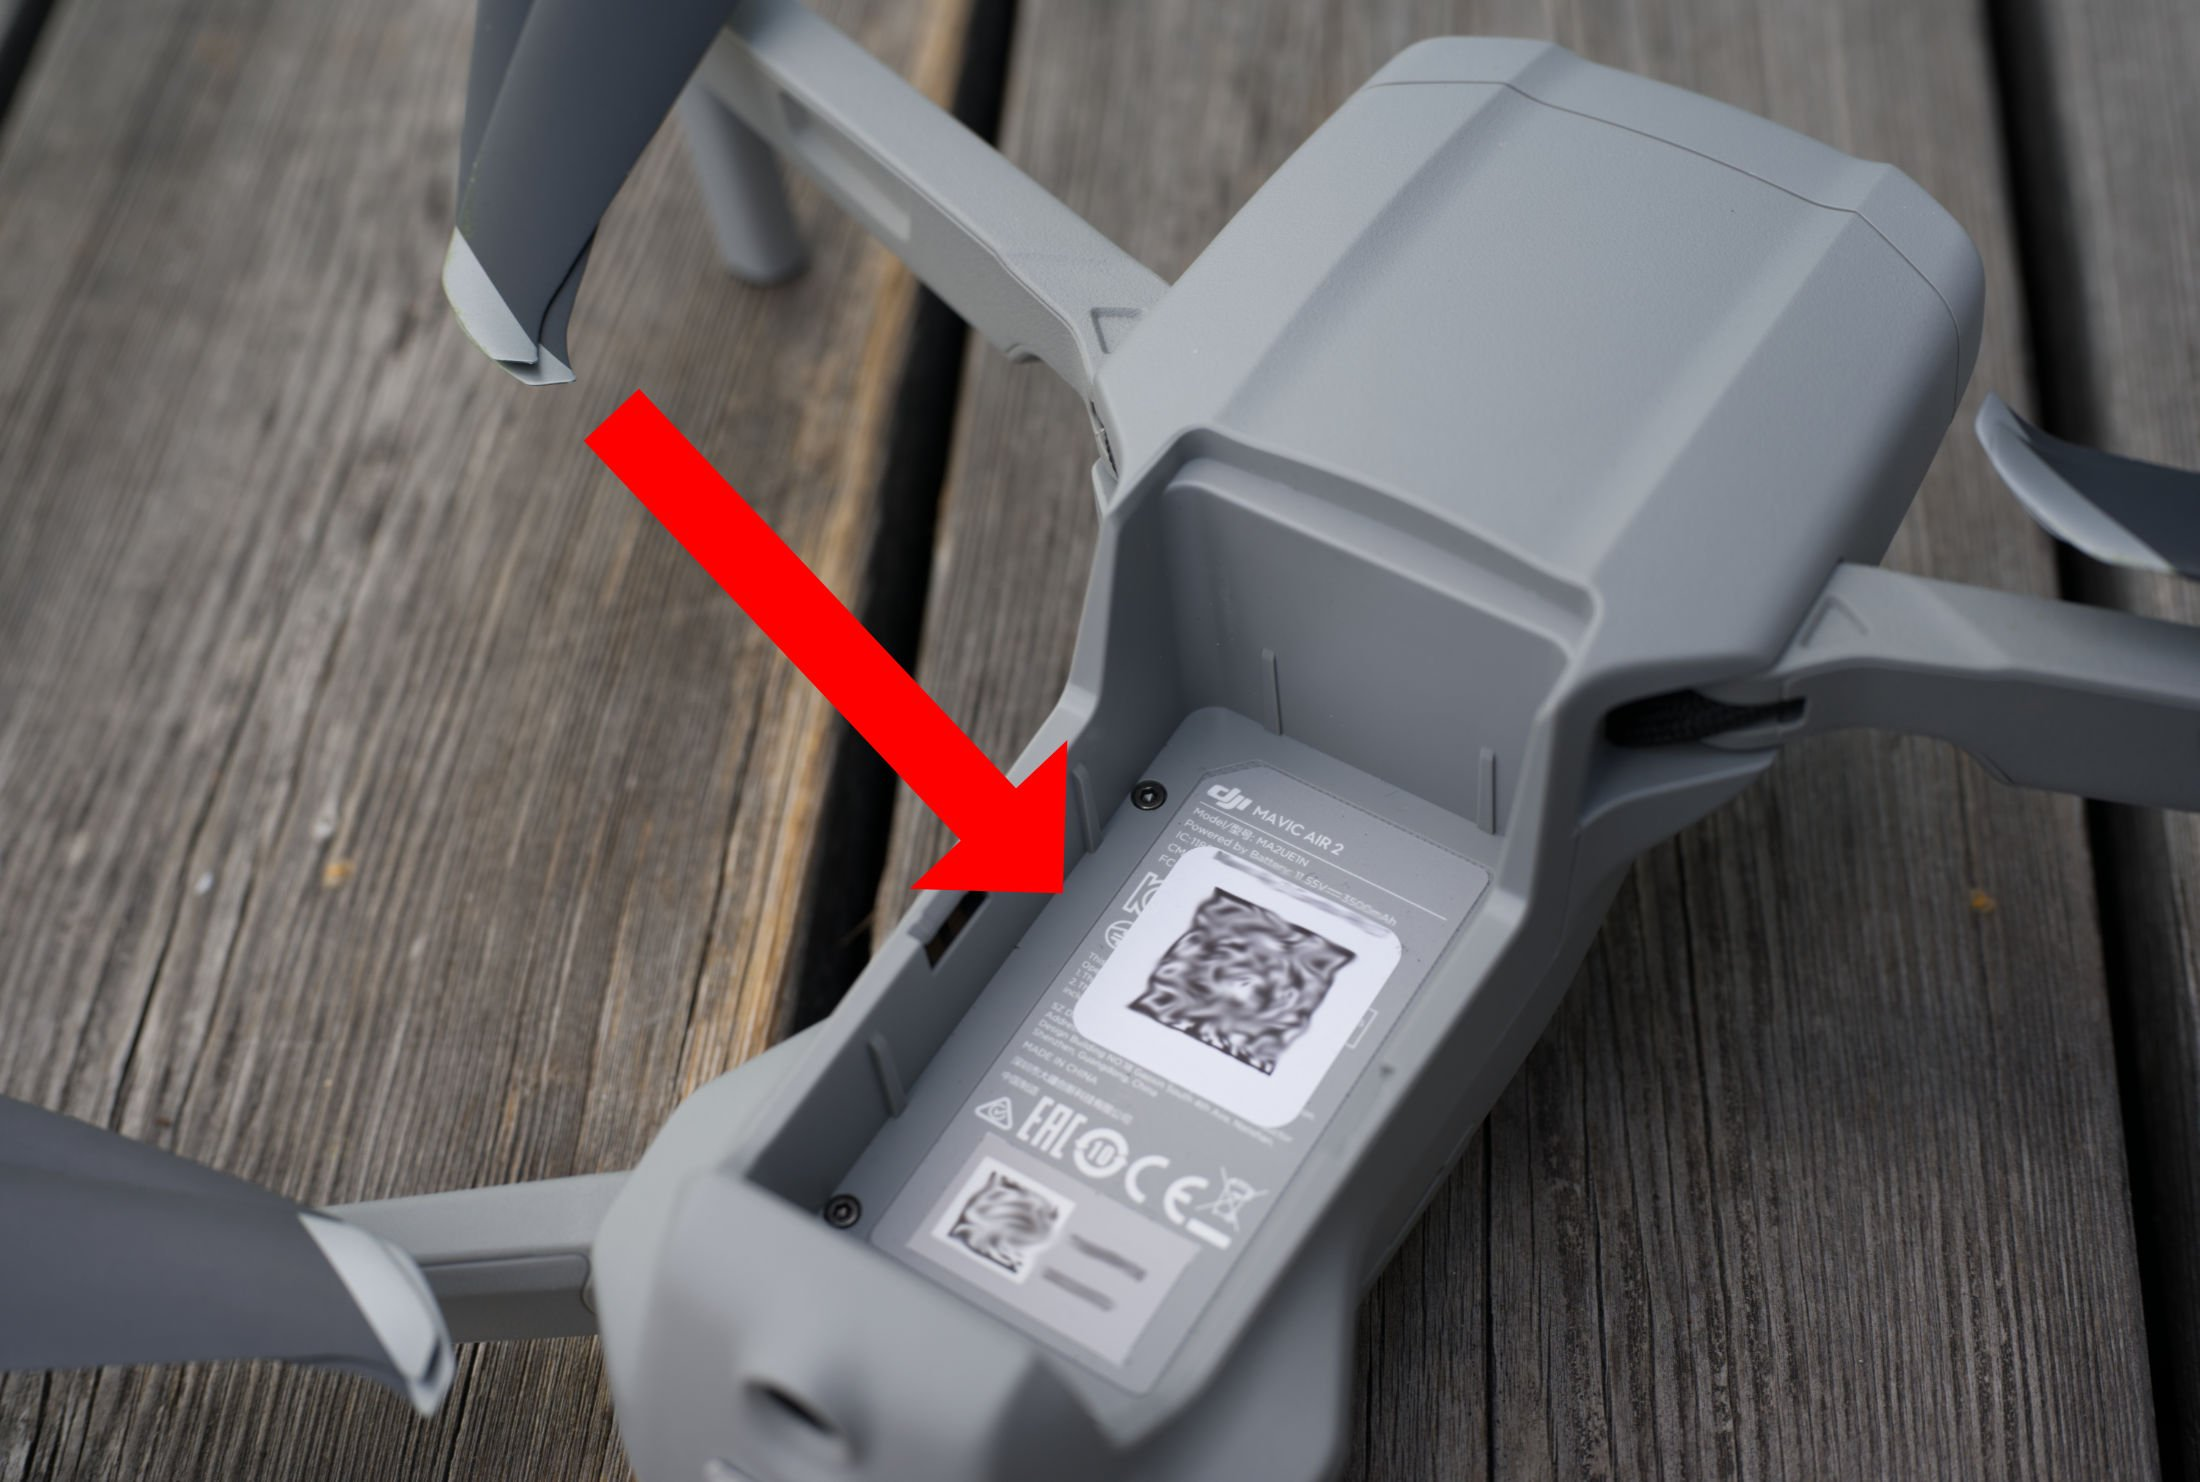 DJI Mavic Air 2 Serial Number Sticker 1